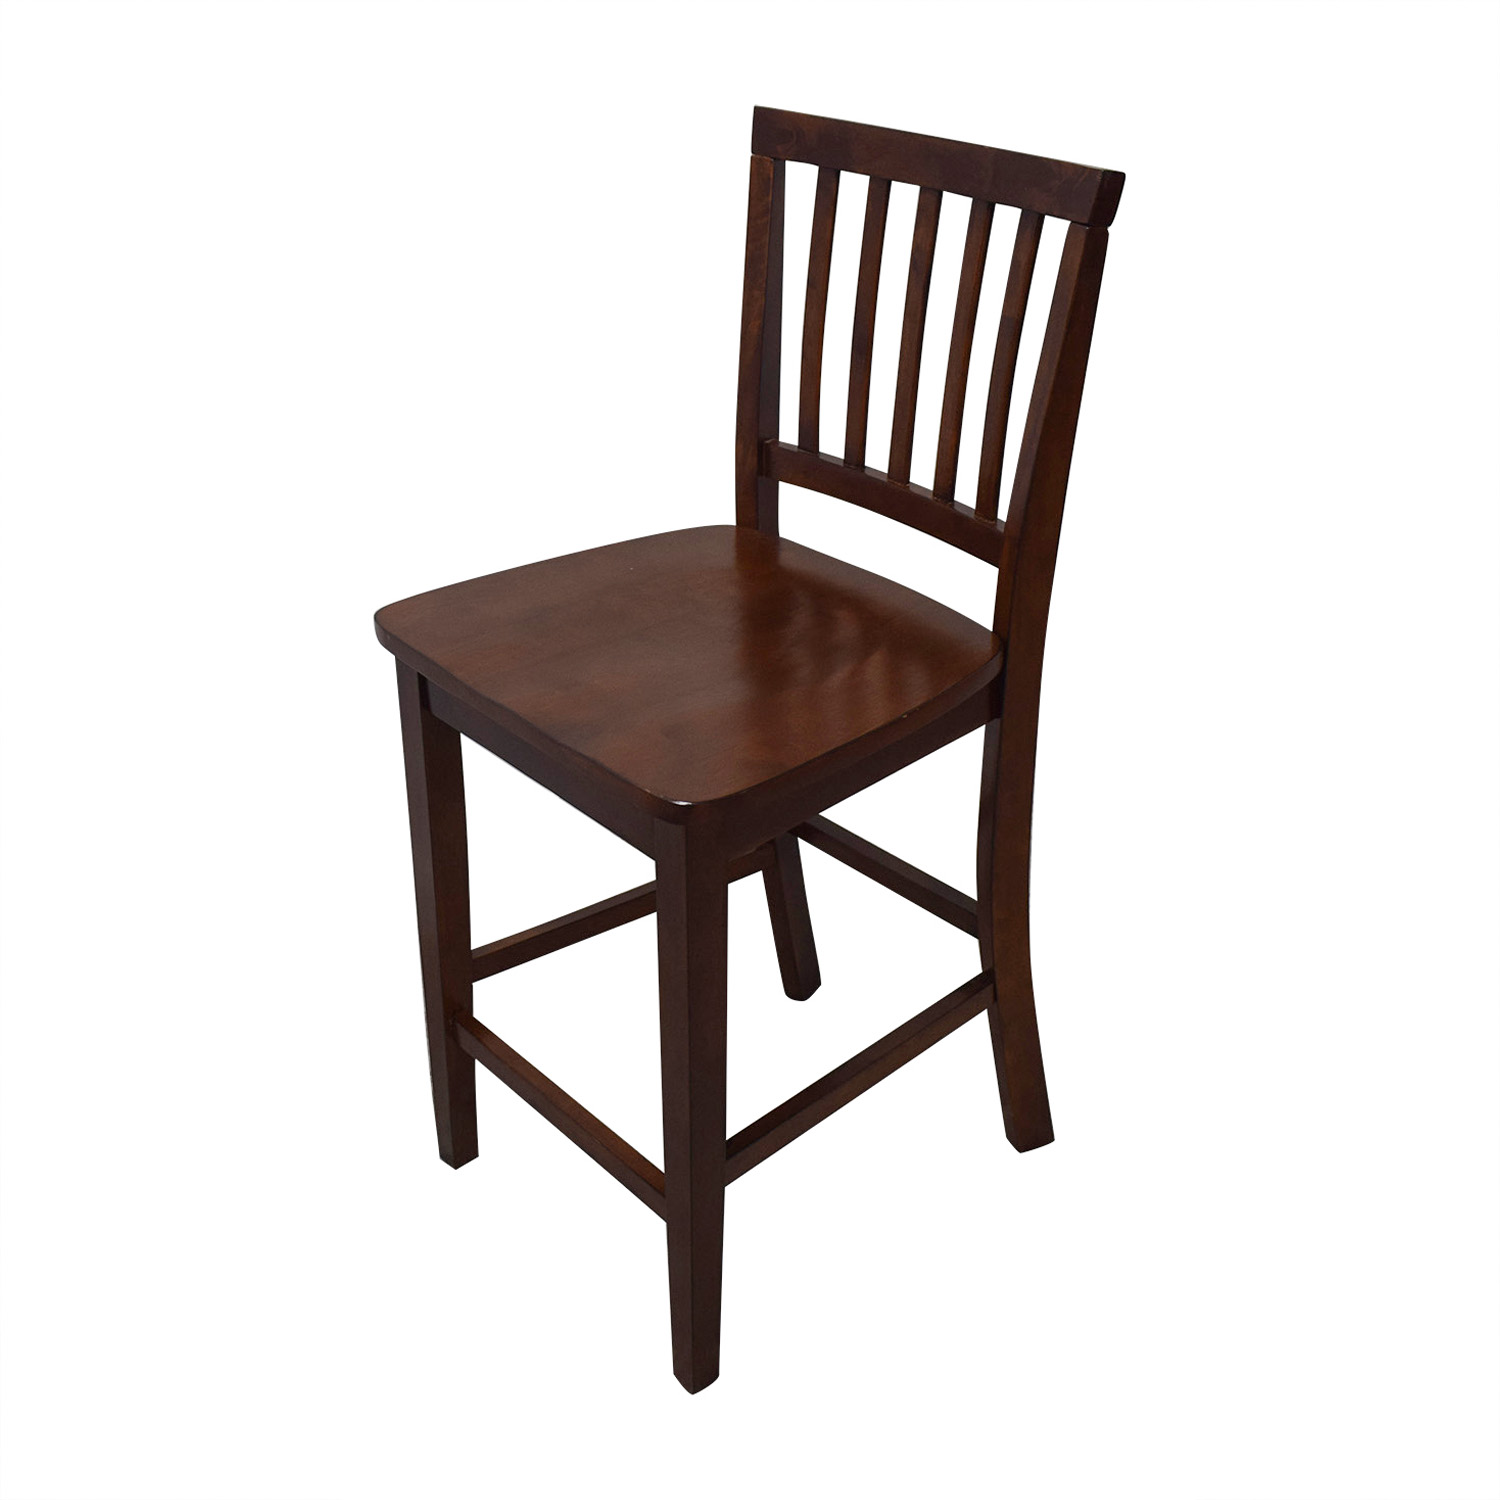 Bob's Discount Furniture Extendable Dining Set sale